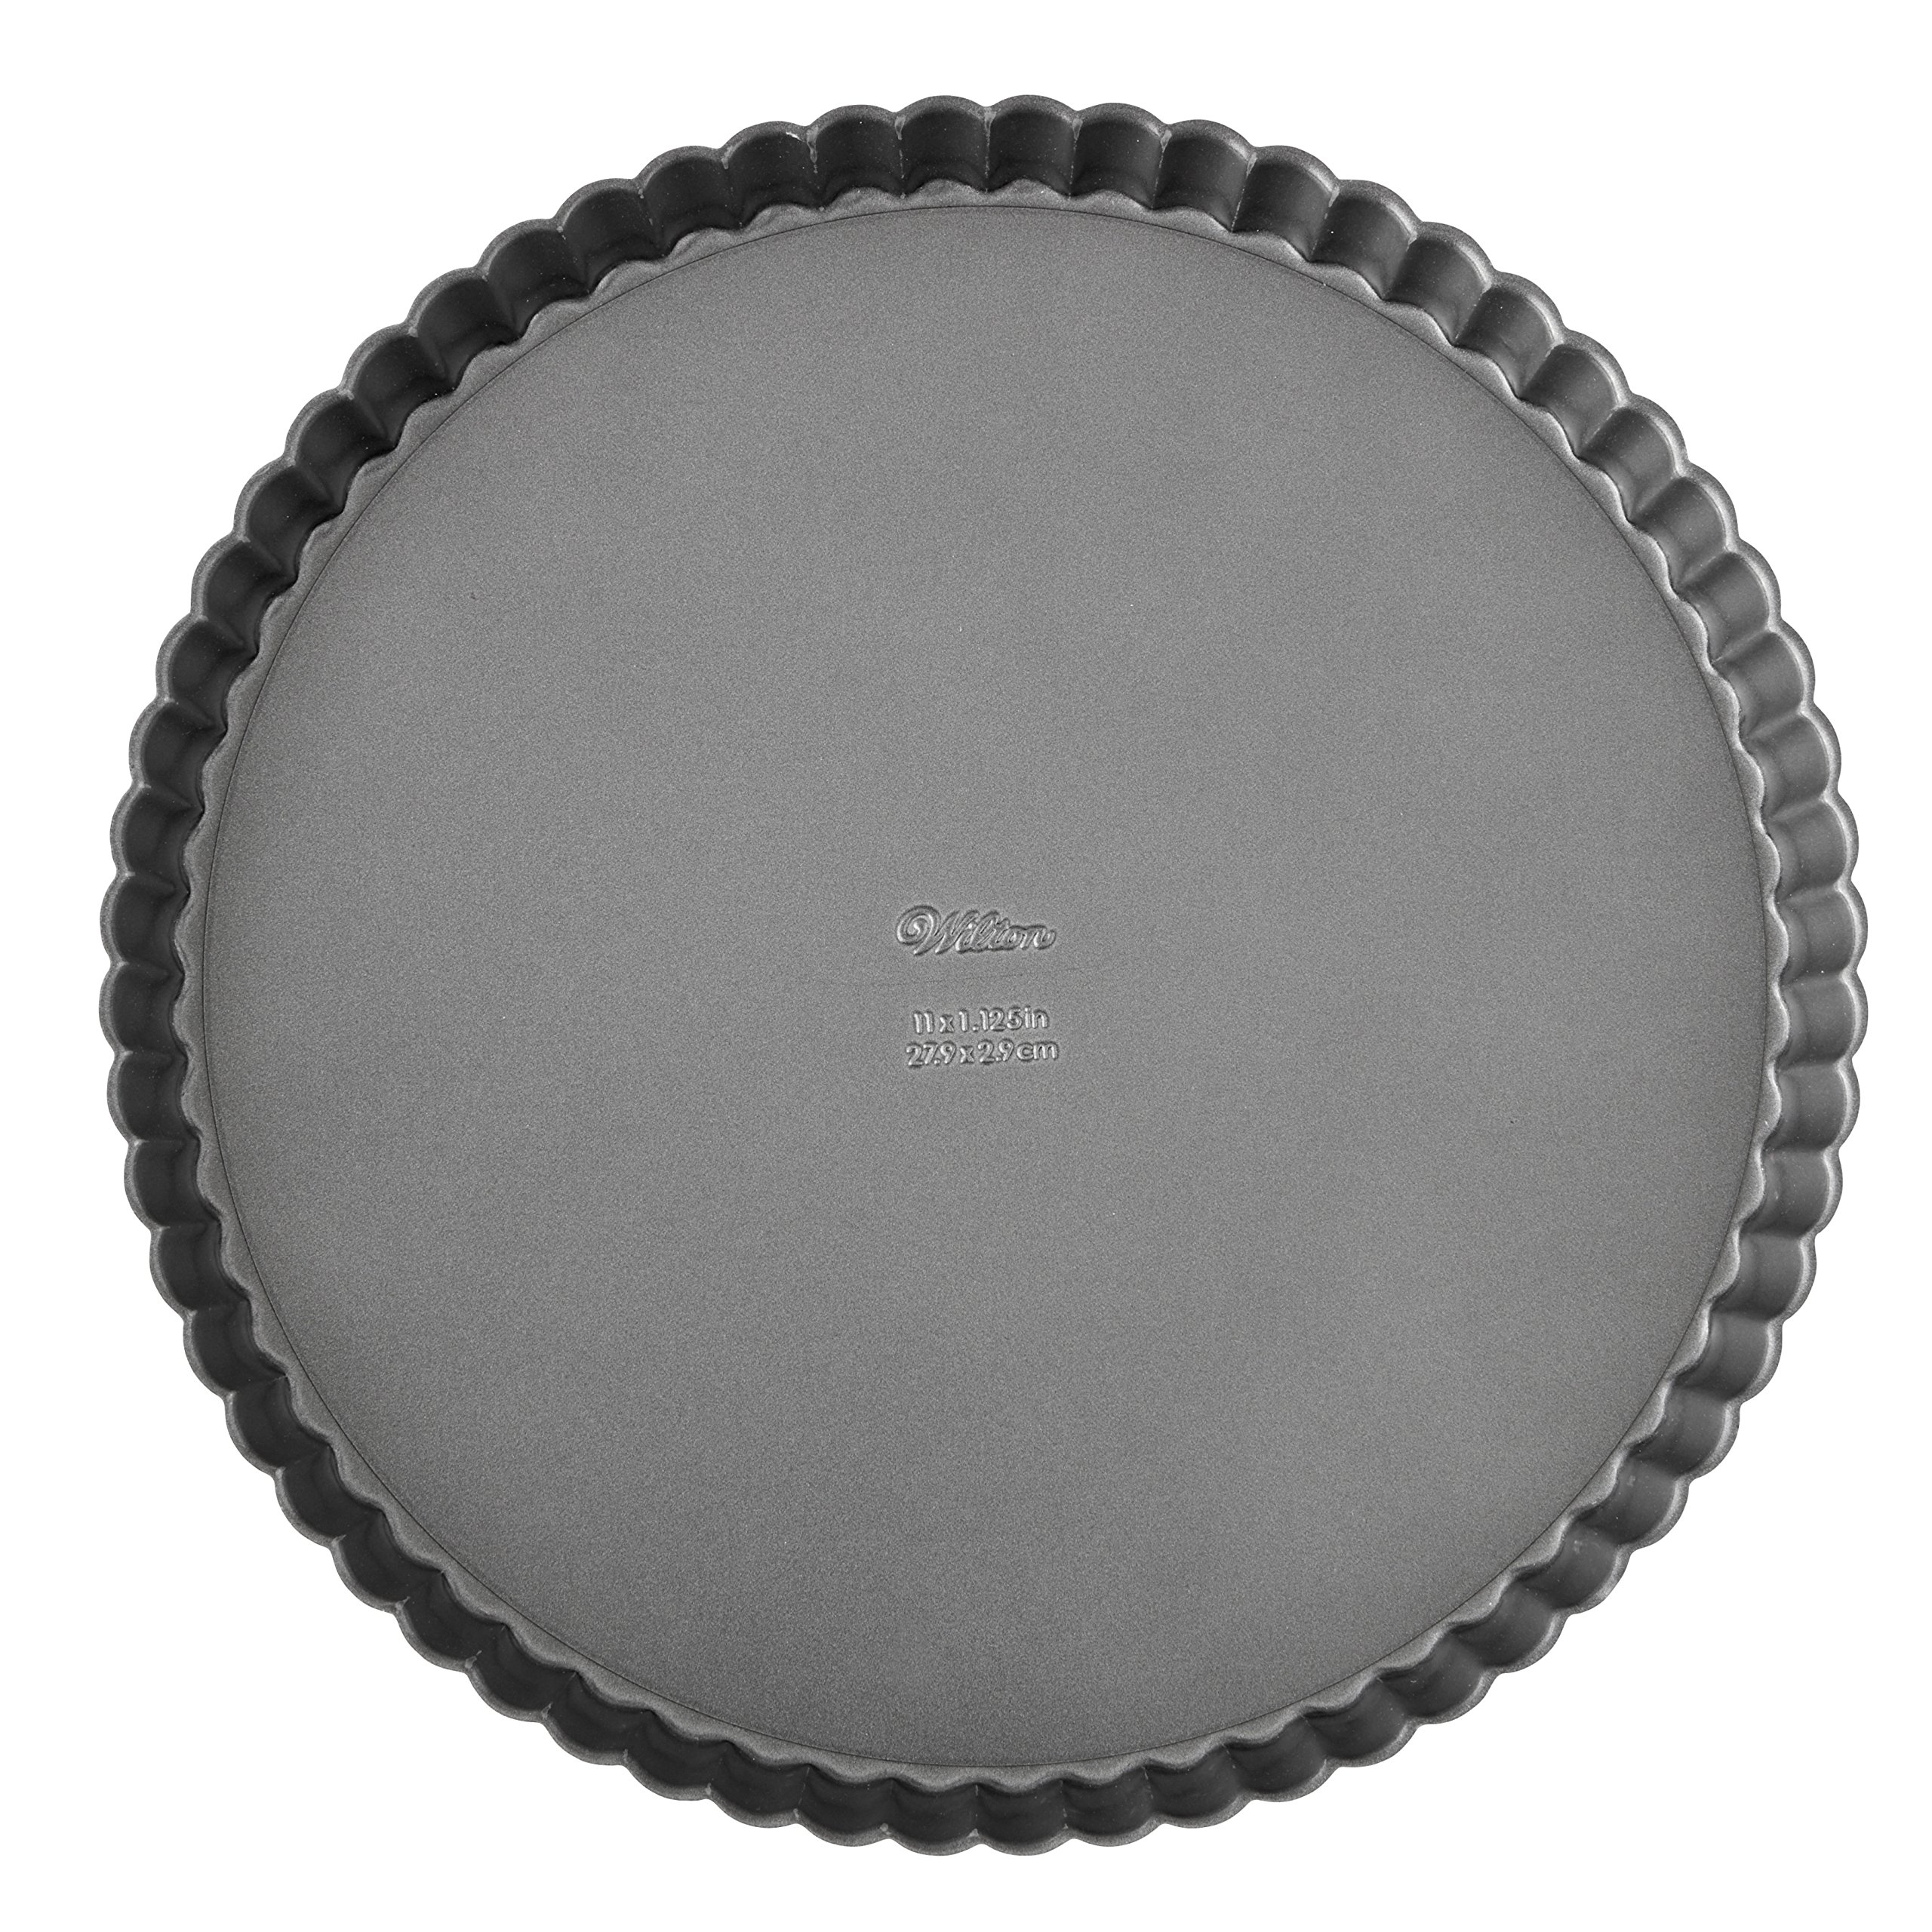 Wilton Excelle Elite Non-Stick Tart Pan and Quiche Pan with Removable Bottom, 11-Inch by Wilton